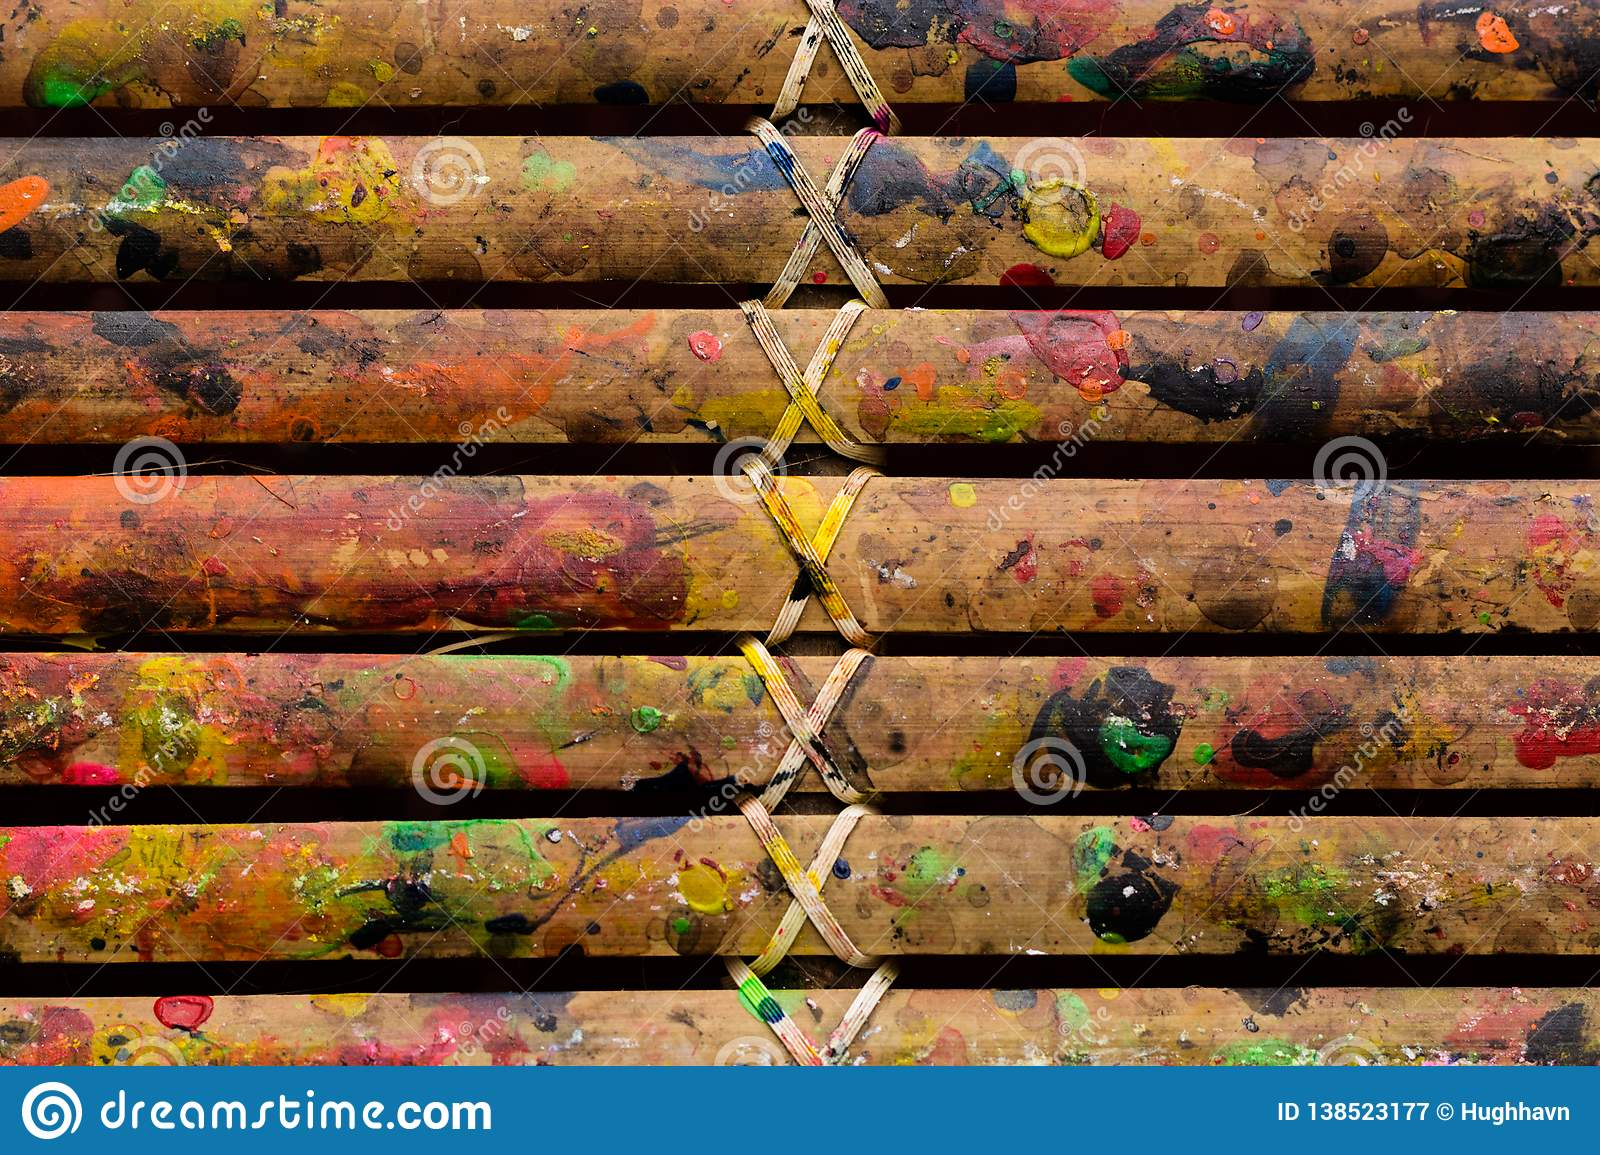 Grunge Bamboo Bars Texture with Colors Spatter for Abstract Background